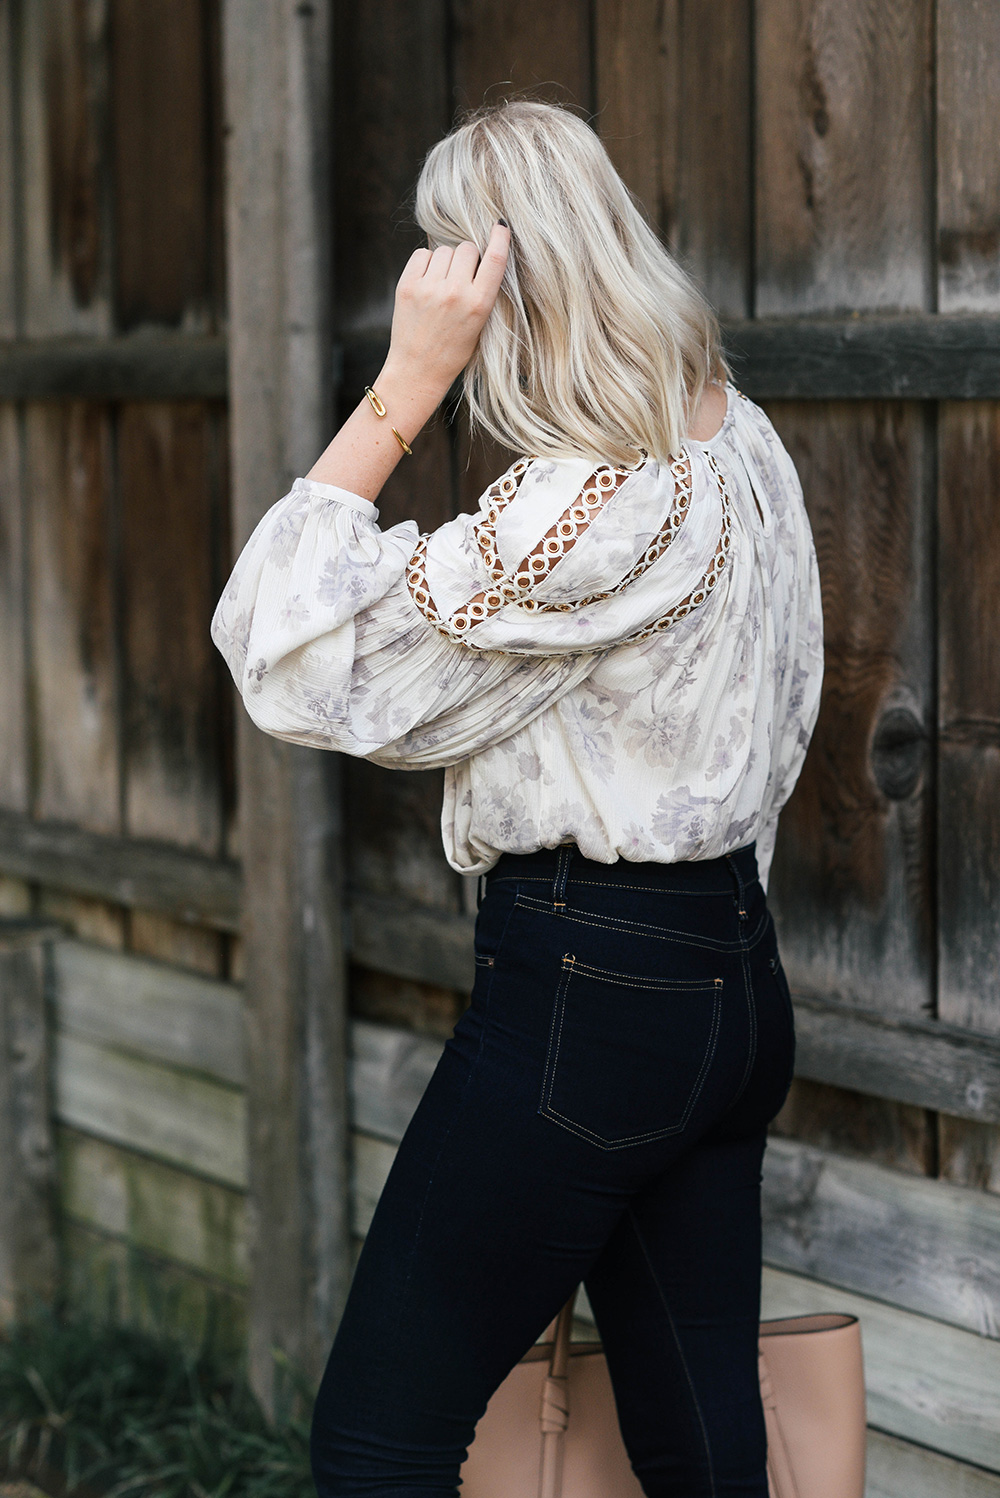 Topshop Grommet Detail Blouse | The Style Scribe